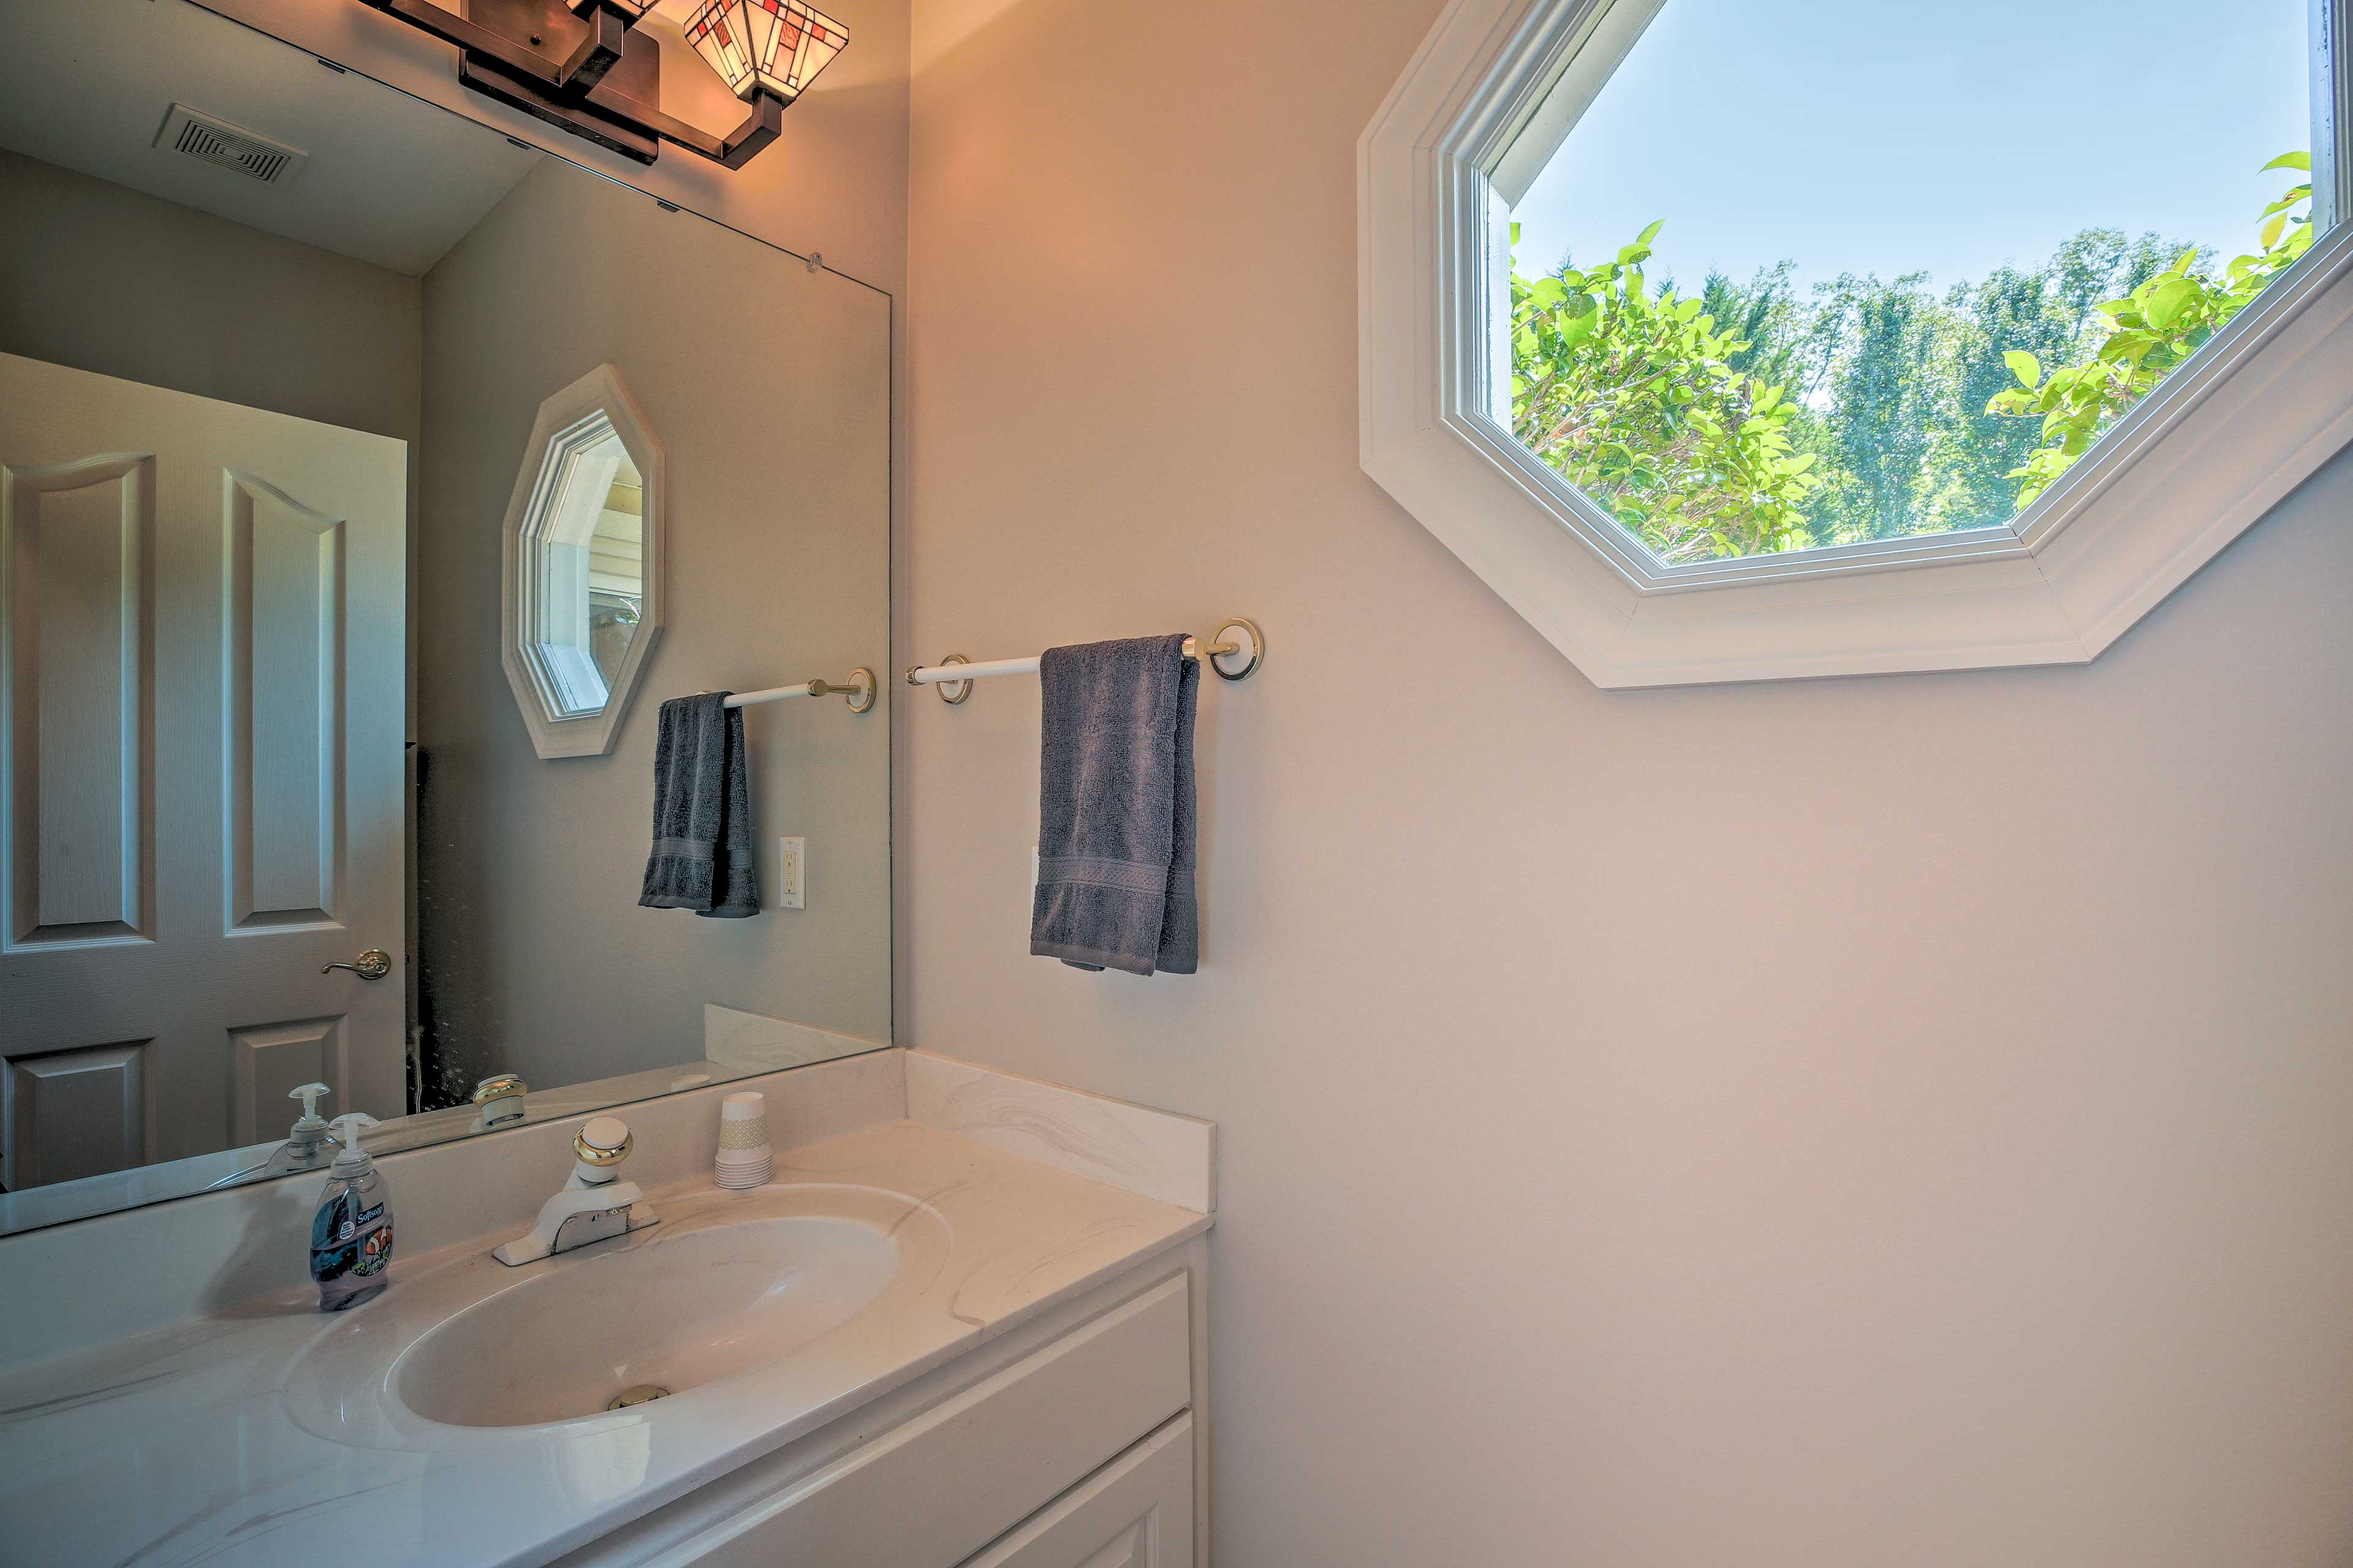 With 4.5 bathrooms in the house, guests won't have to fight over space.